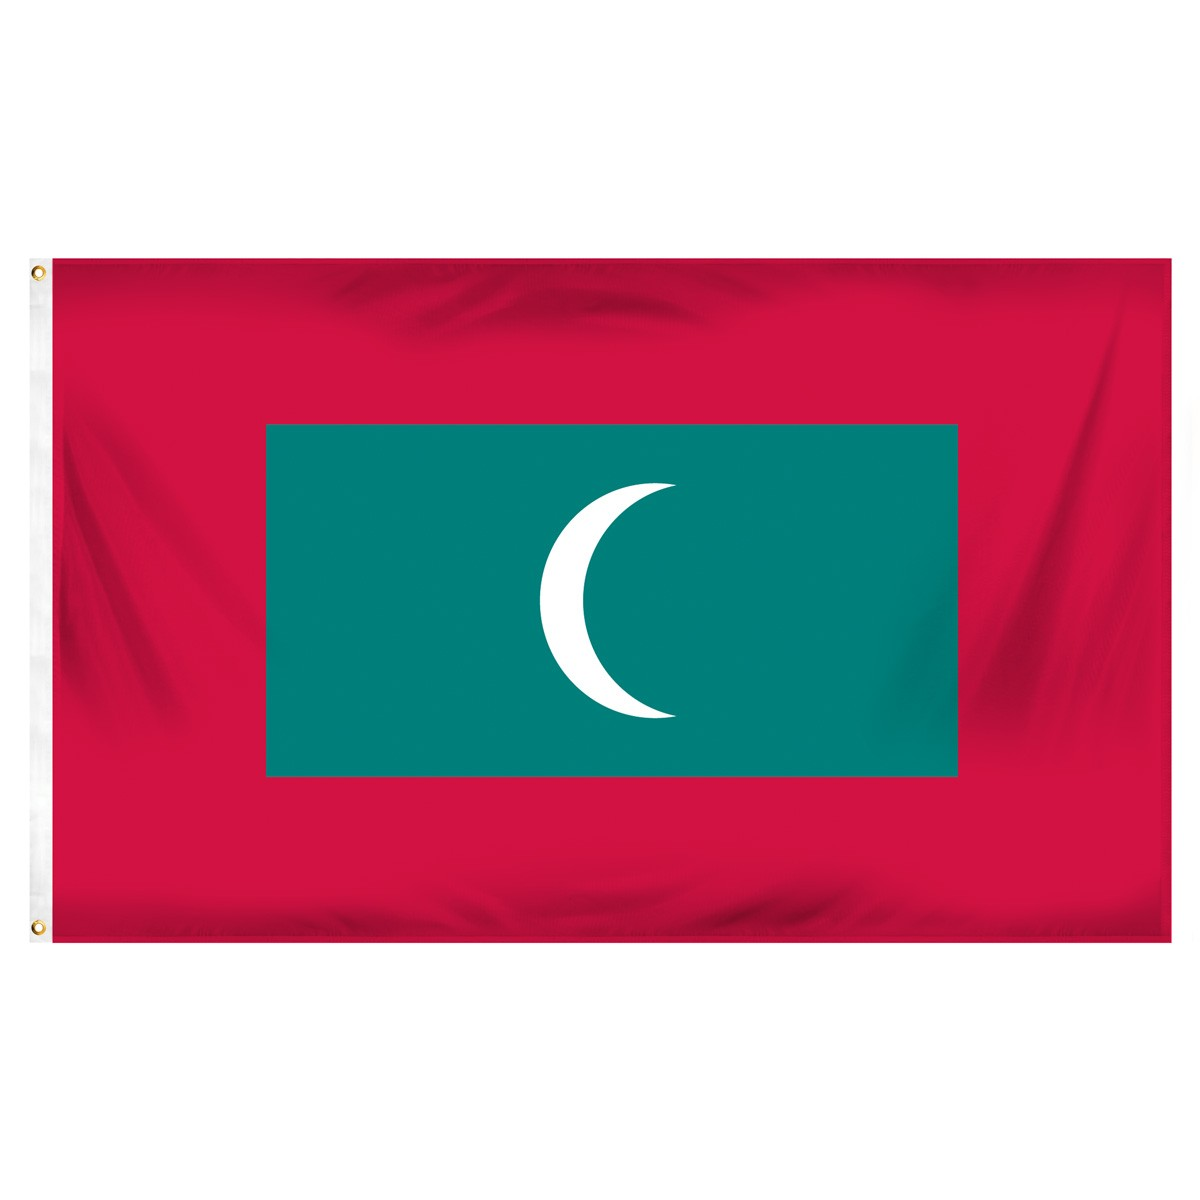 Maldives Triangle Flags and Pennants